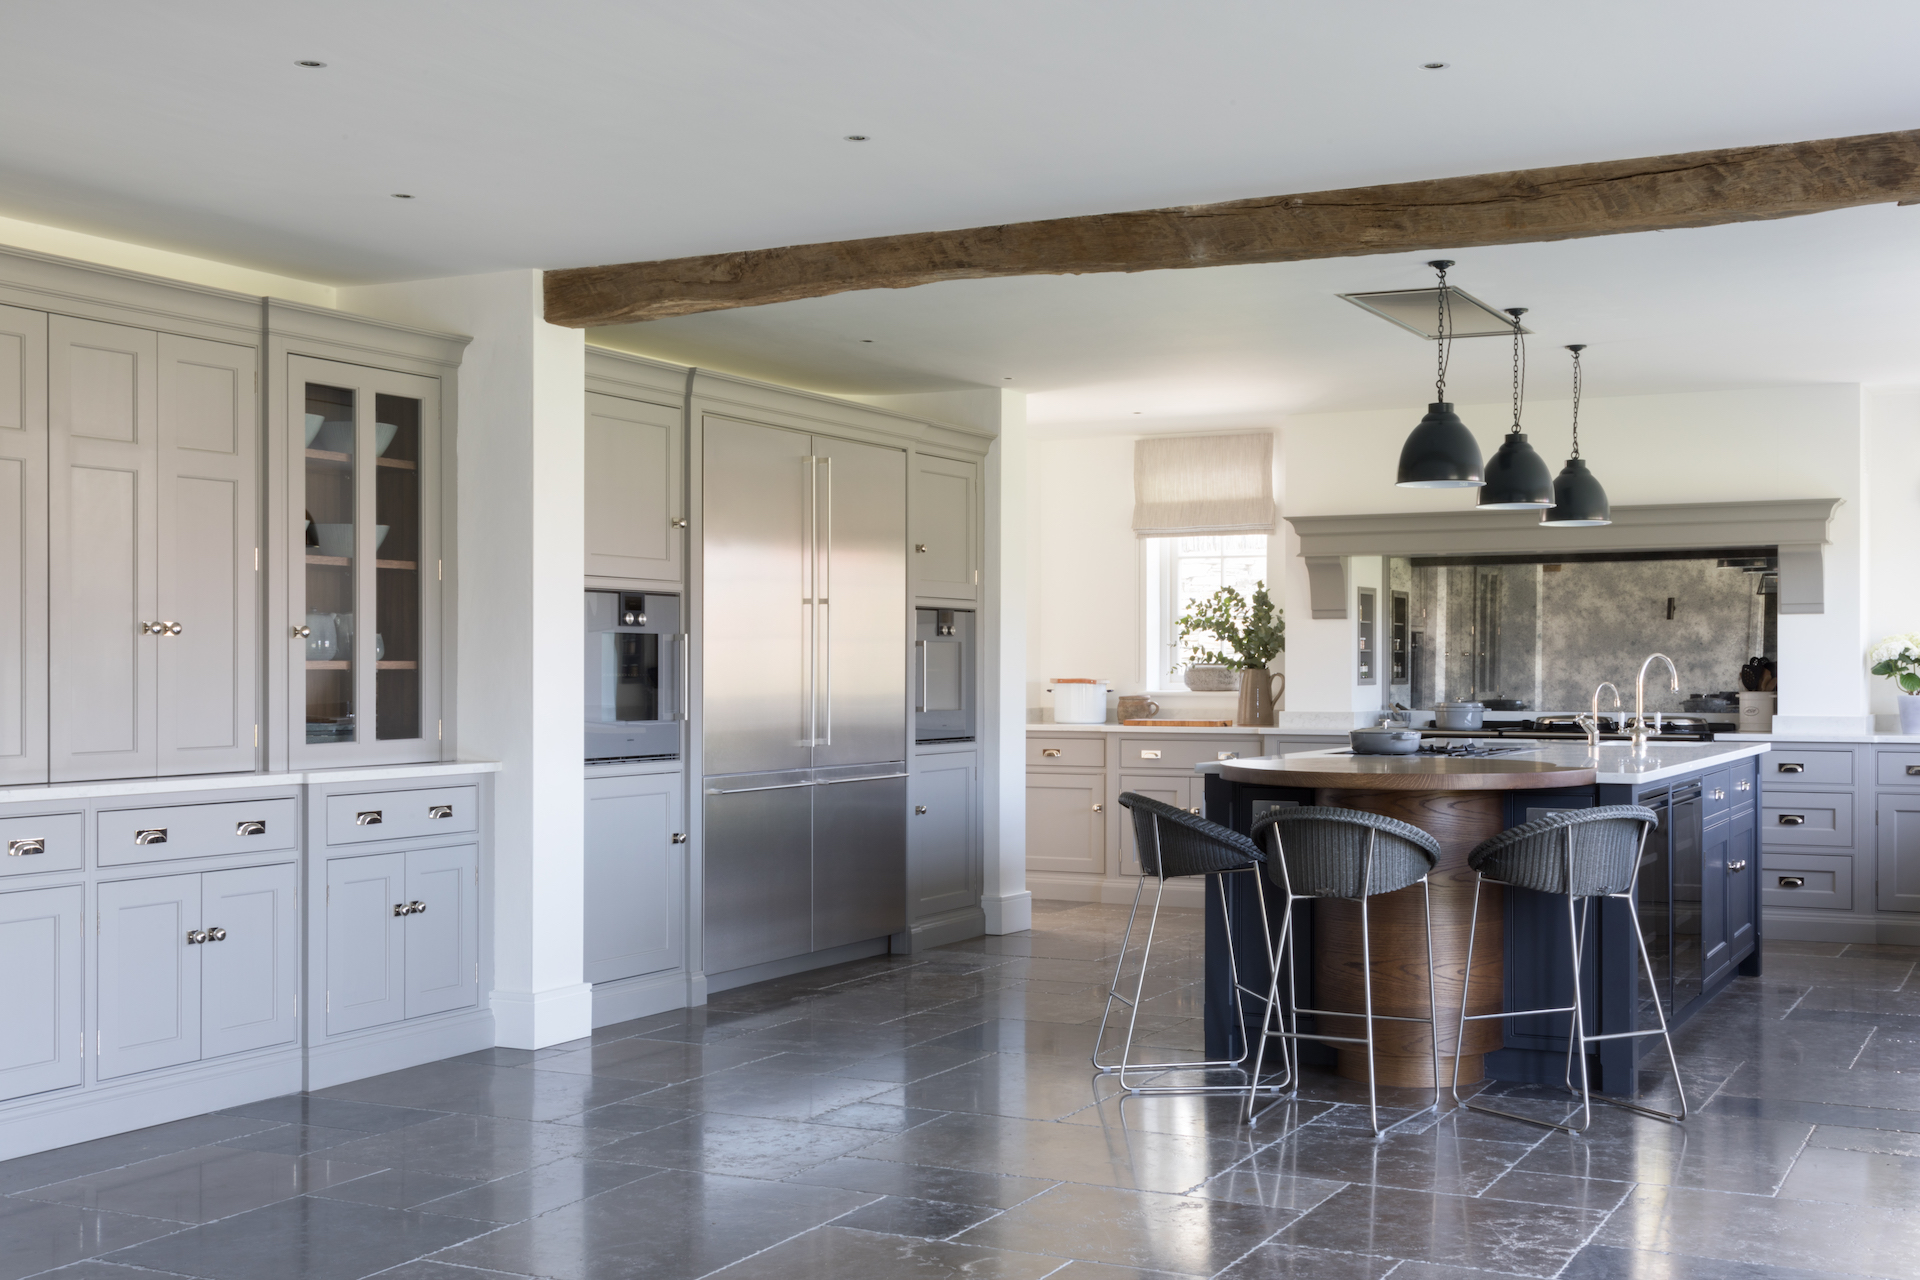 Gaggenau 200 series oven -North Cornwall kitchen project - Humphrey Munson Blog